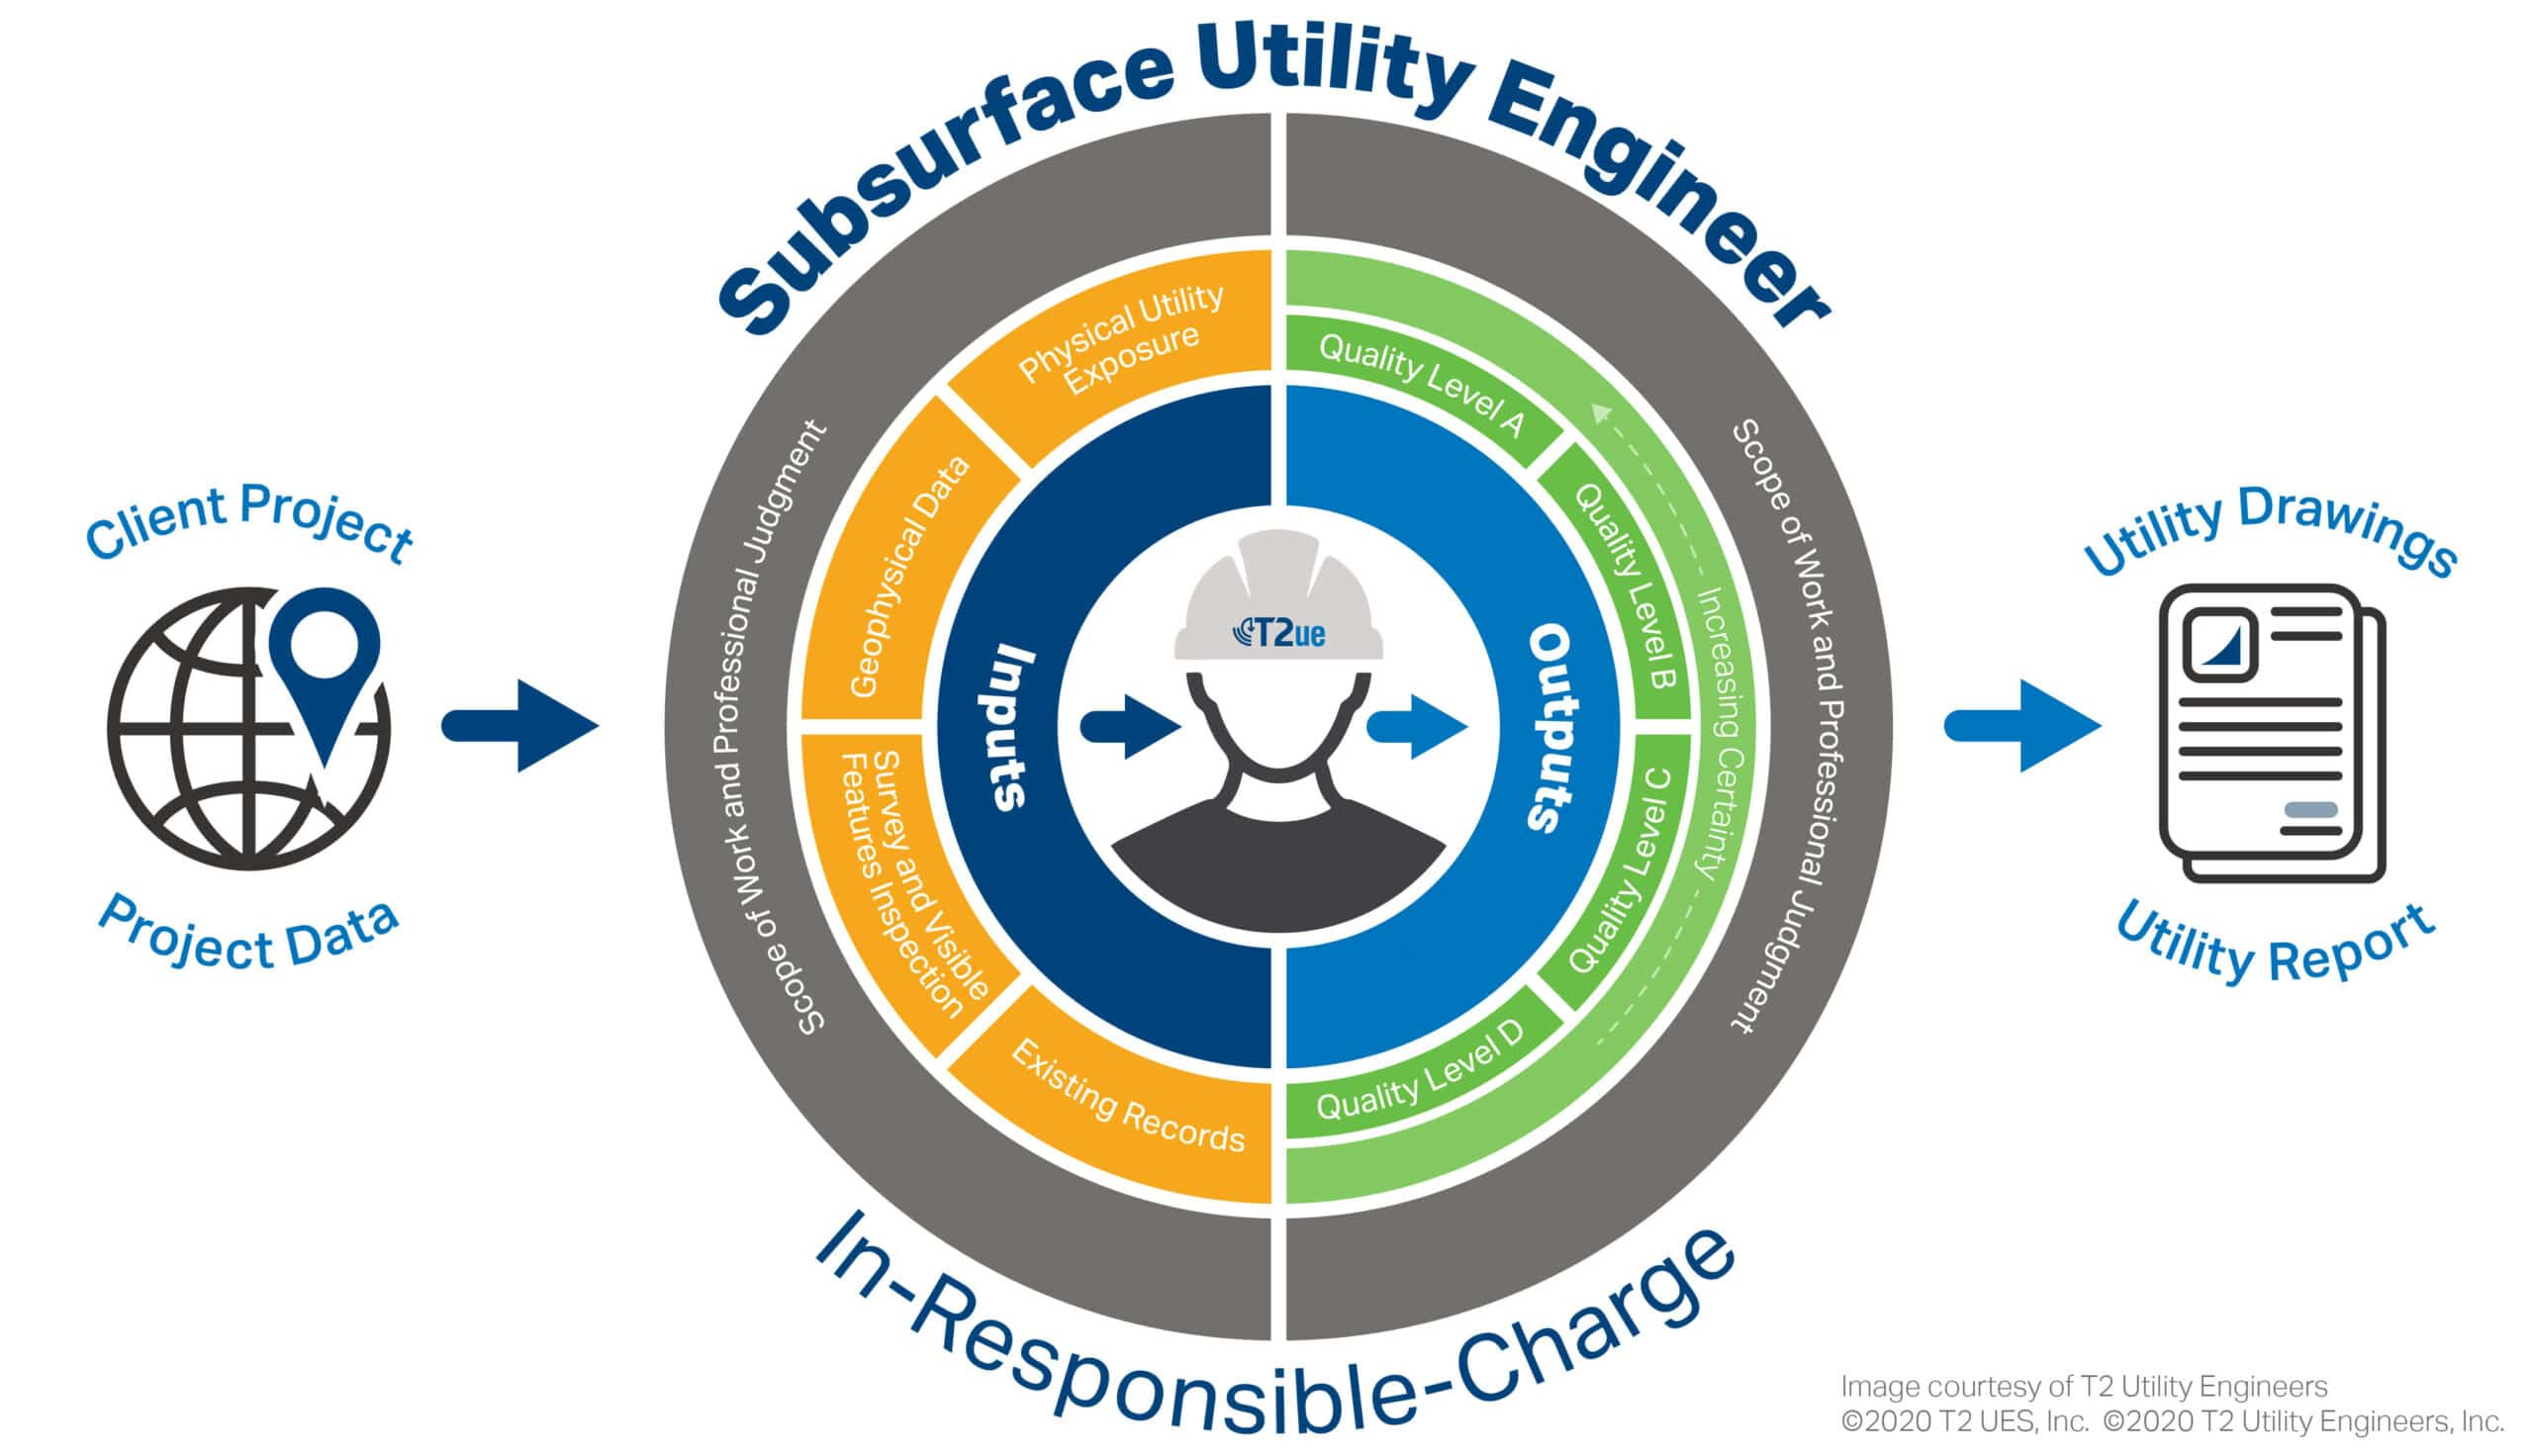 Subsurface Utility in Responsible Charge graphic